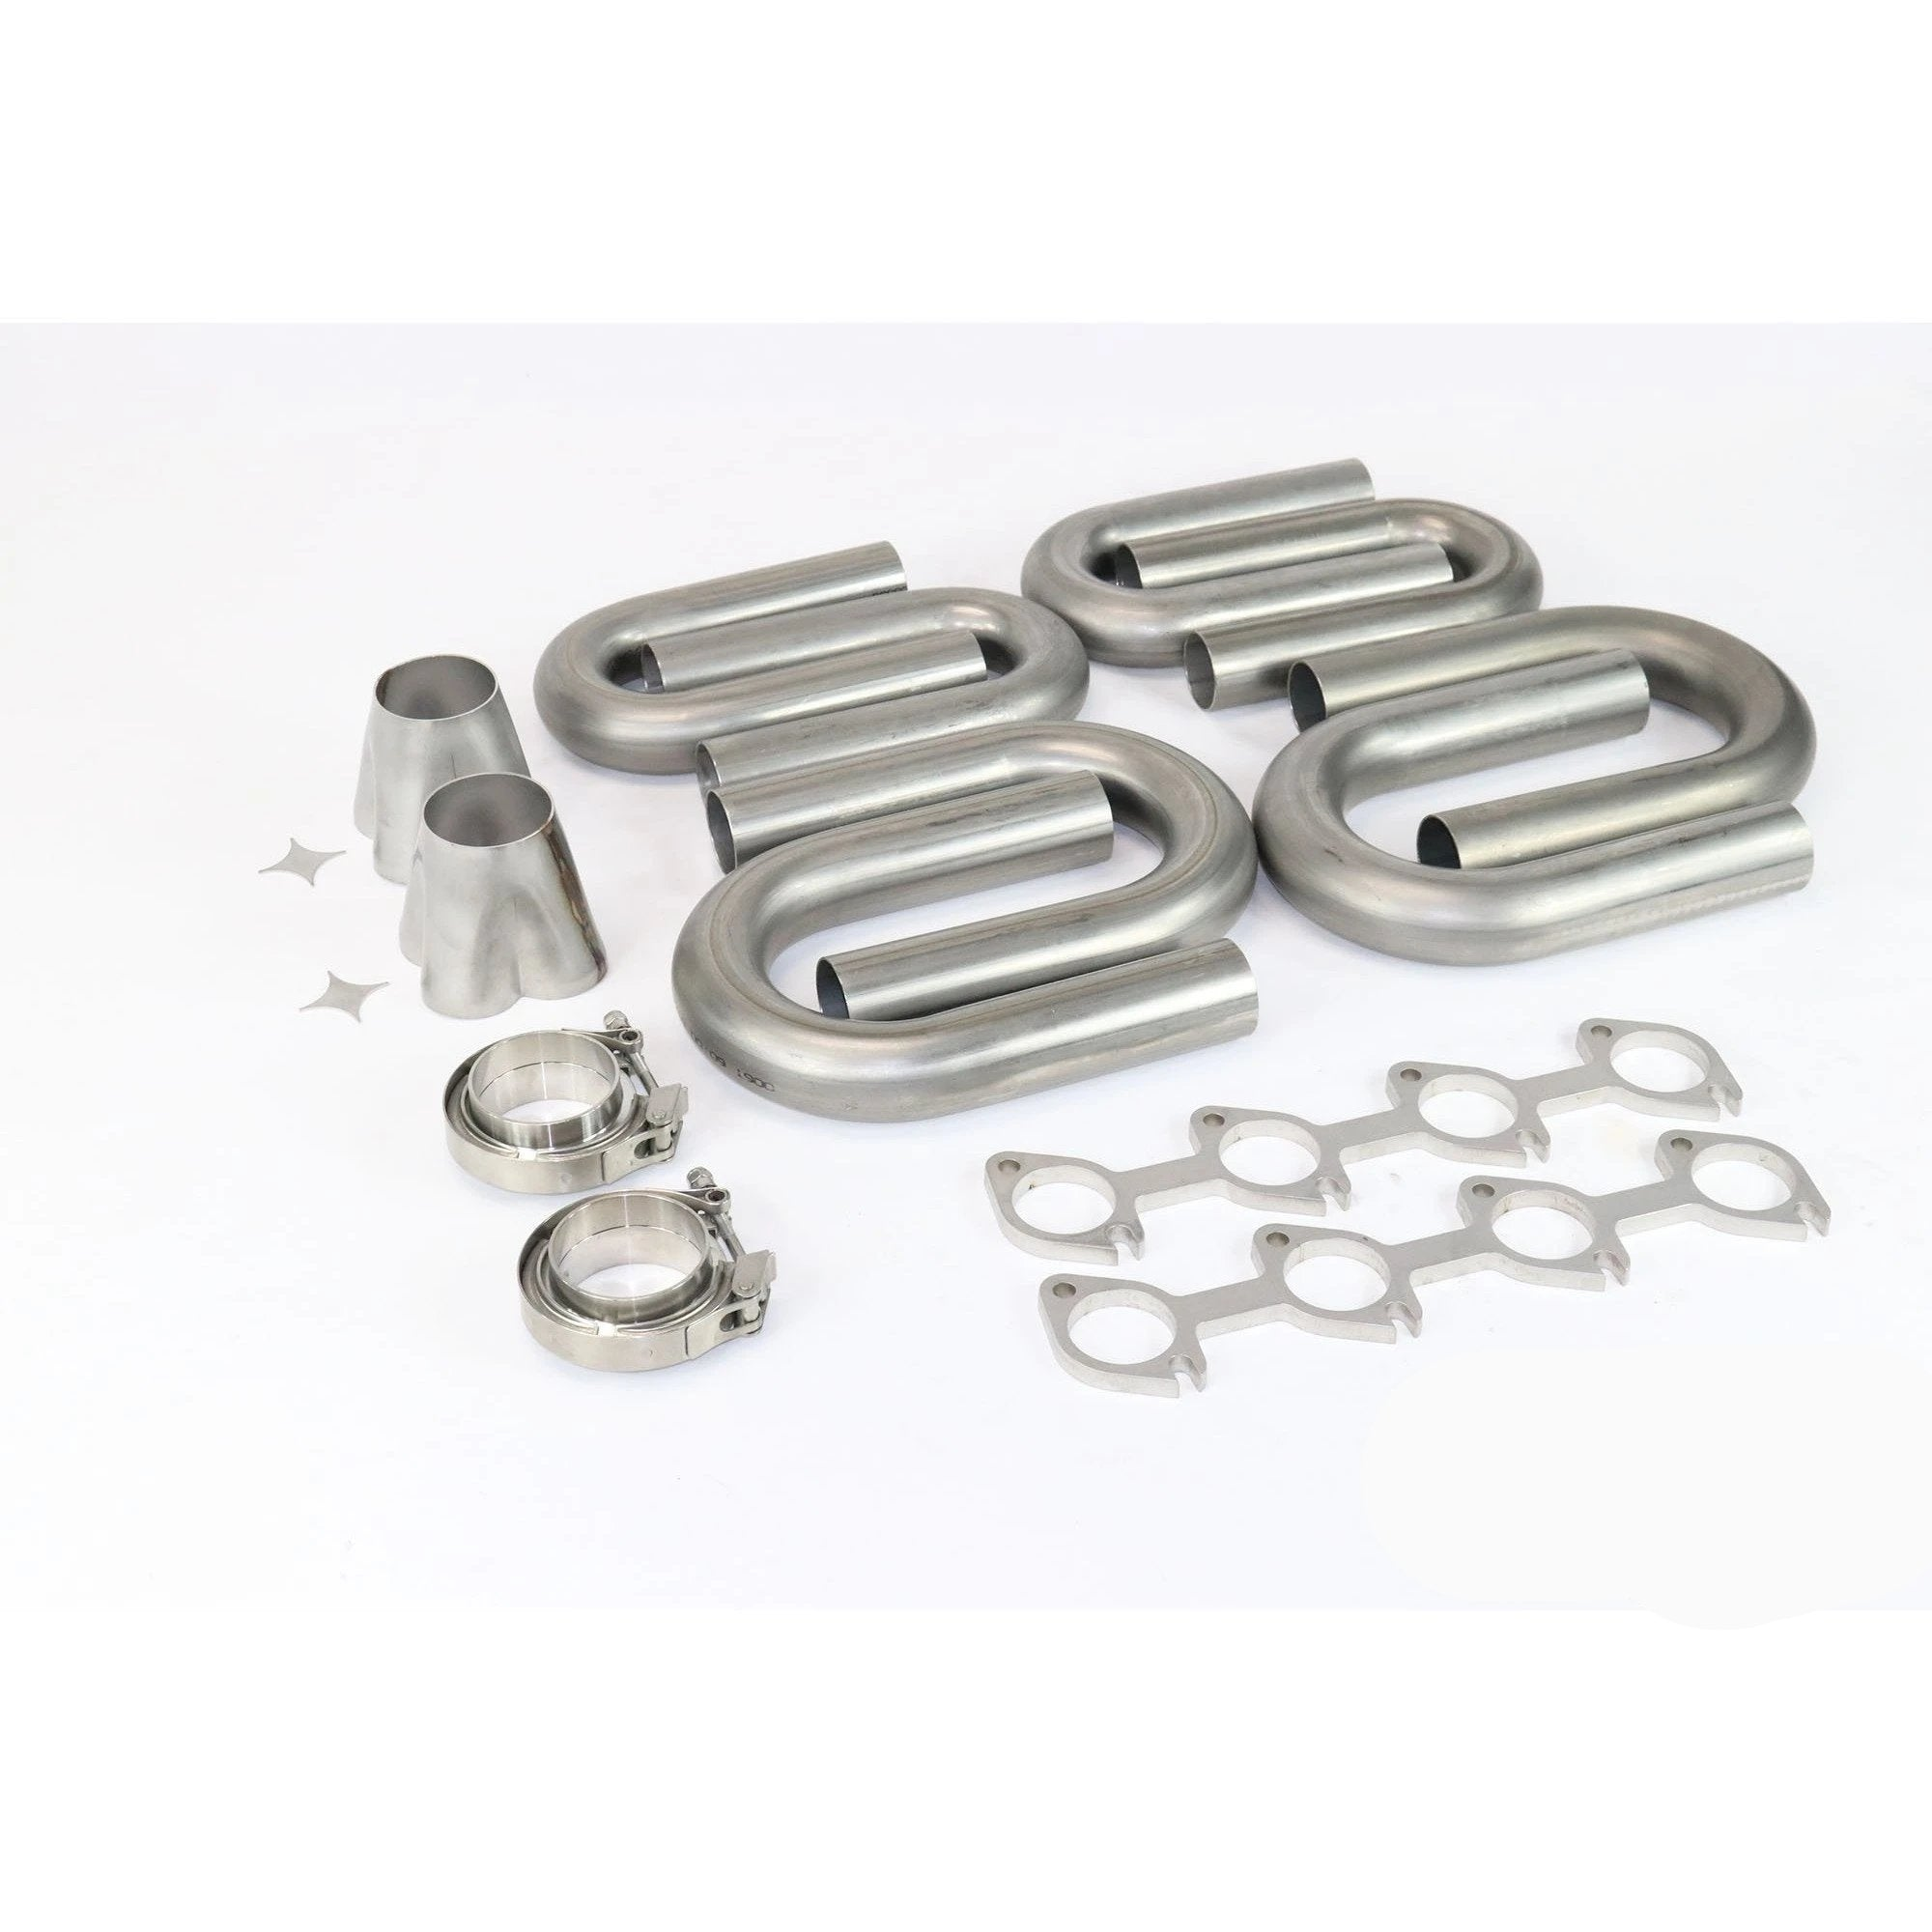 Ford Modular 2V 4.6 304 Stainless Turbo Header Build Kit-Motion Raceworks-Motion Raceworks